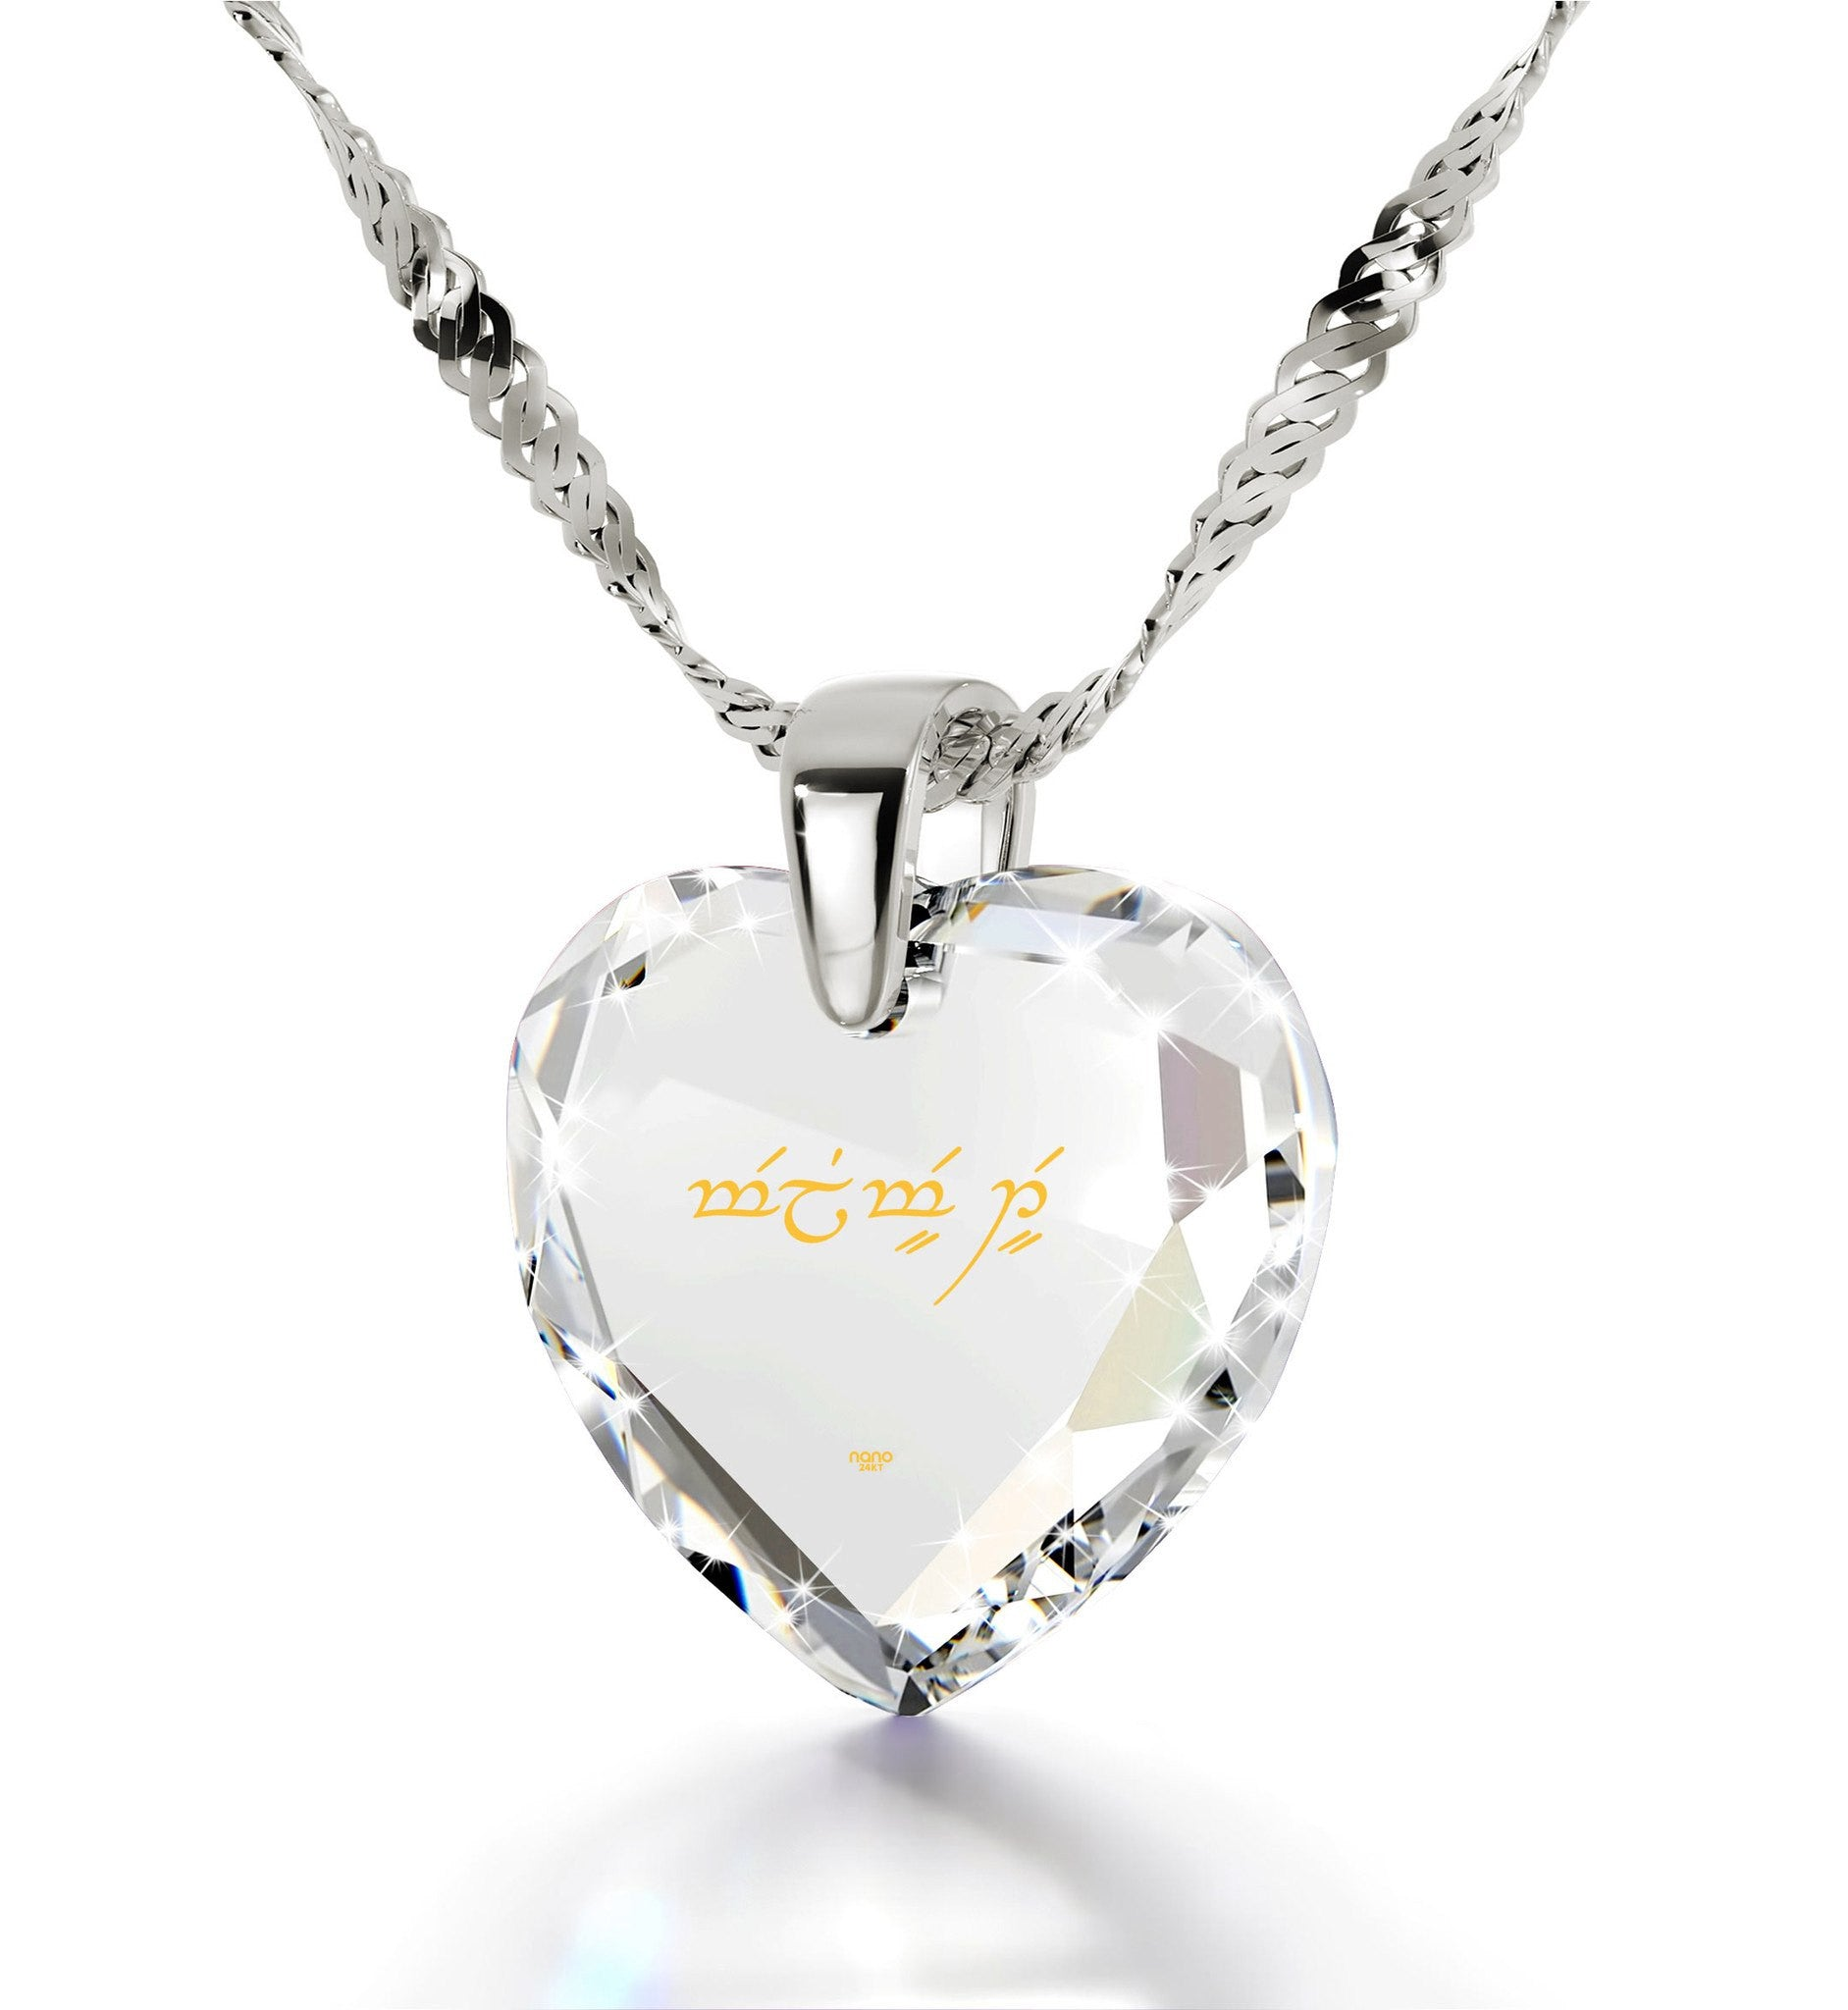 Cute Necklaces For Girlfriend Gift Lotr Inspired Nano Jewelry Now